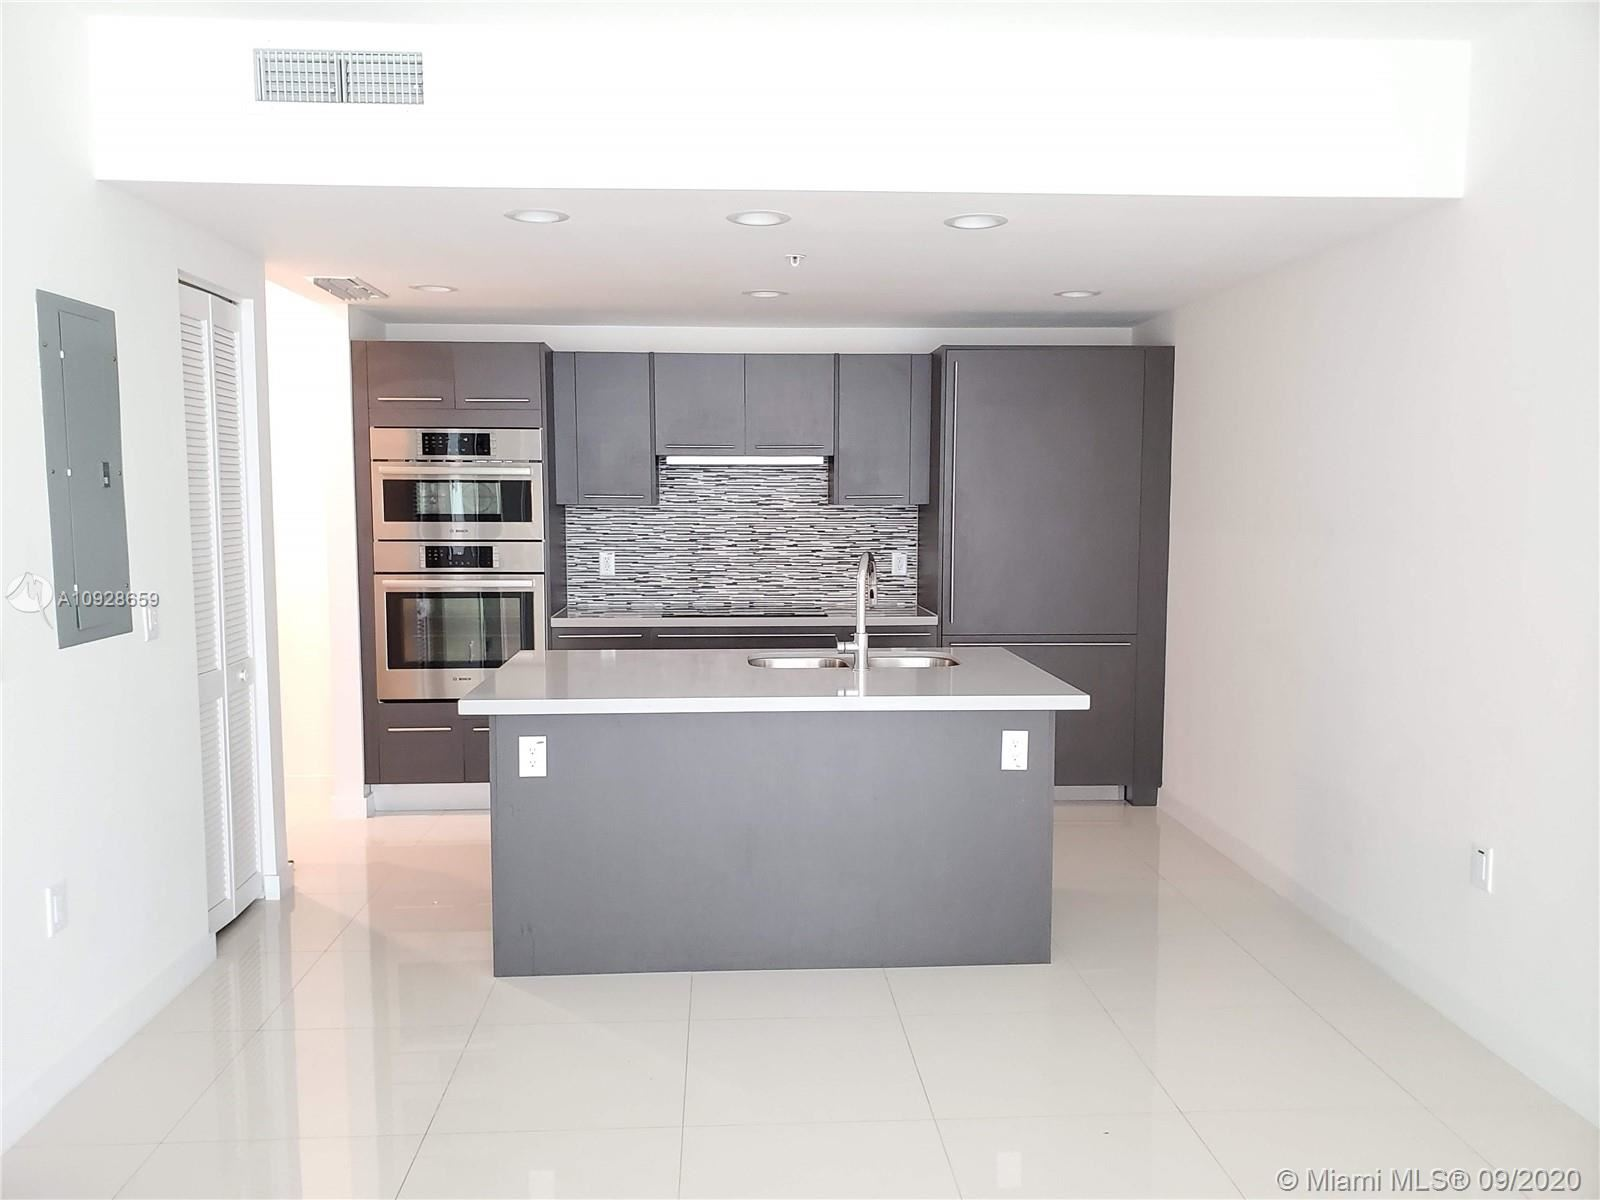 7875 NW 107th Ave #205, Doral, FL 33178 - #: A10928659